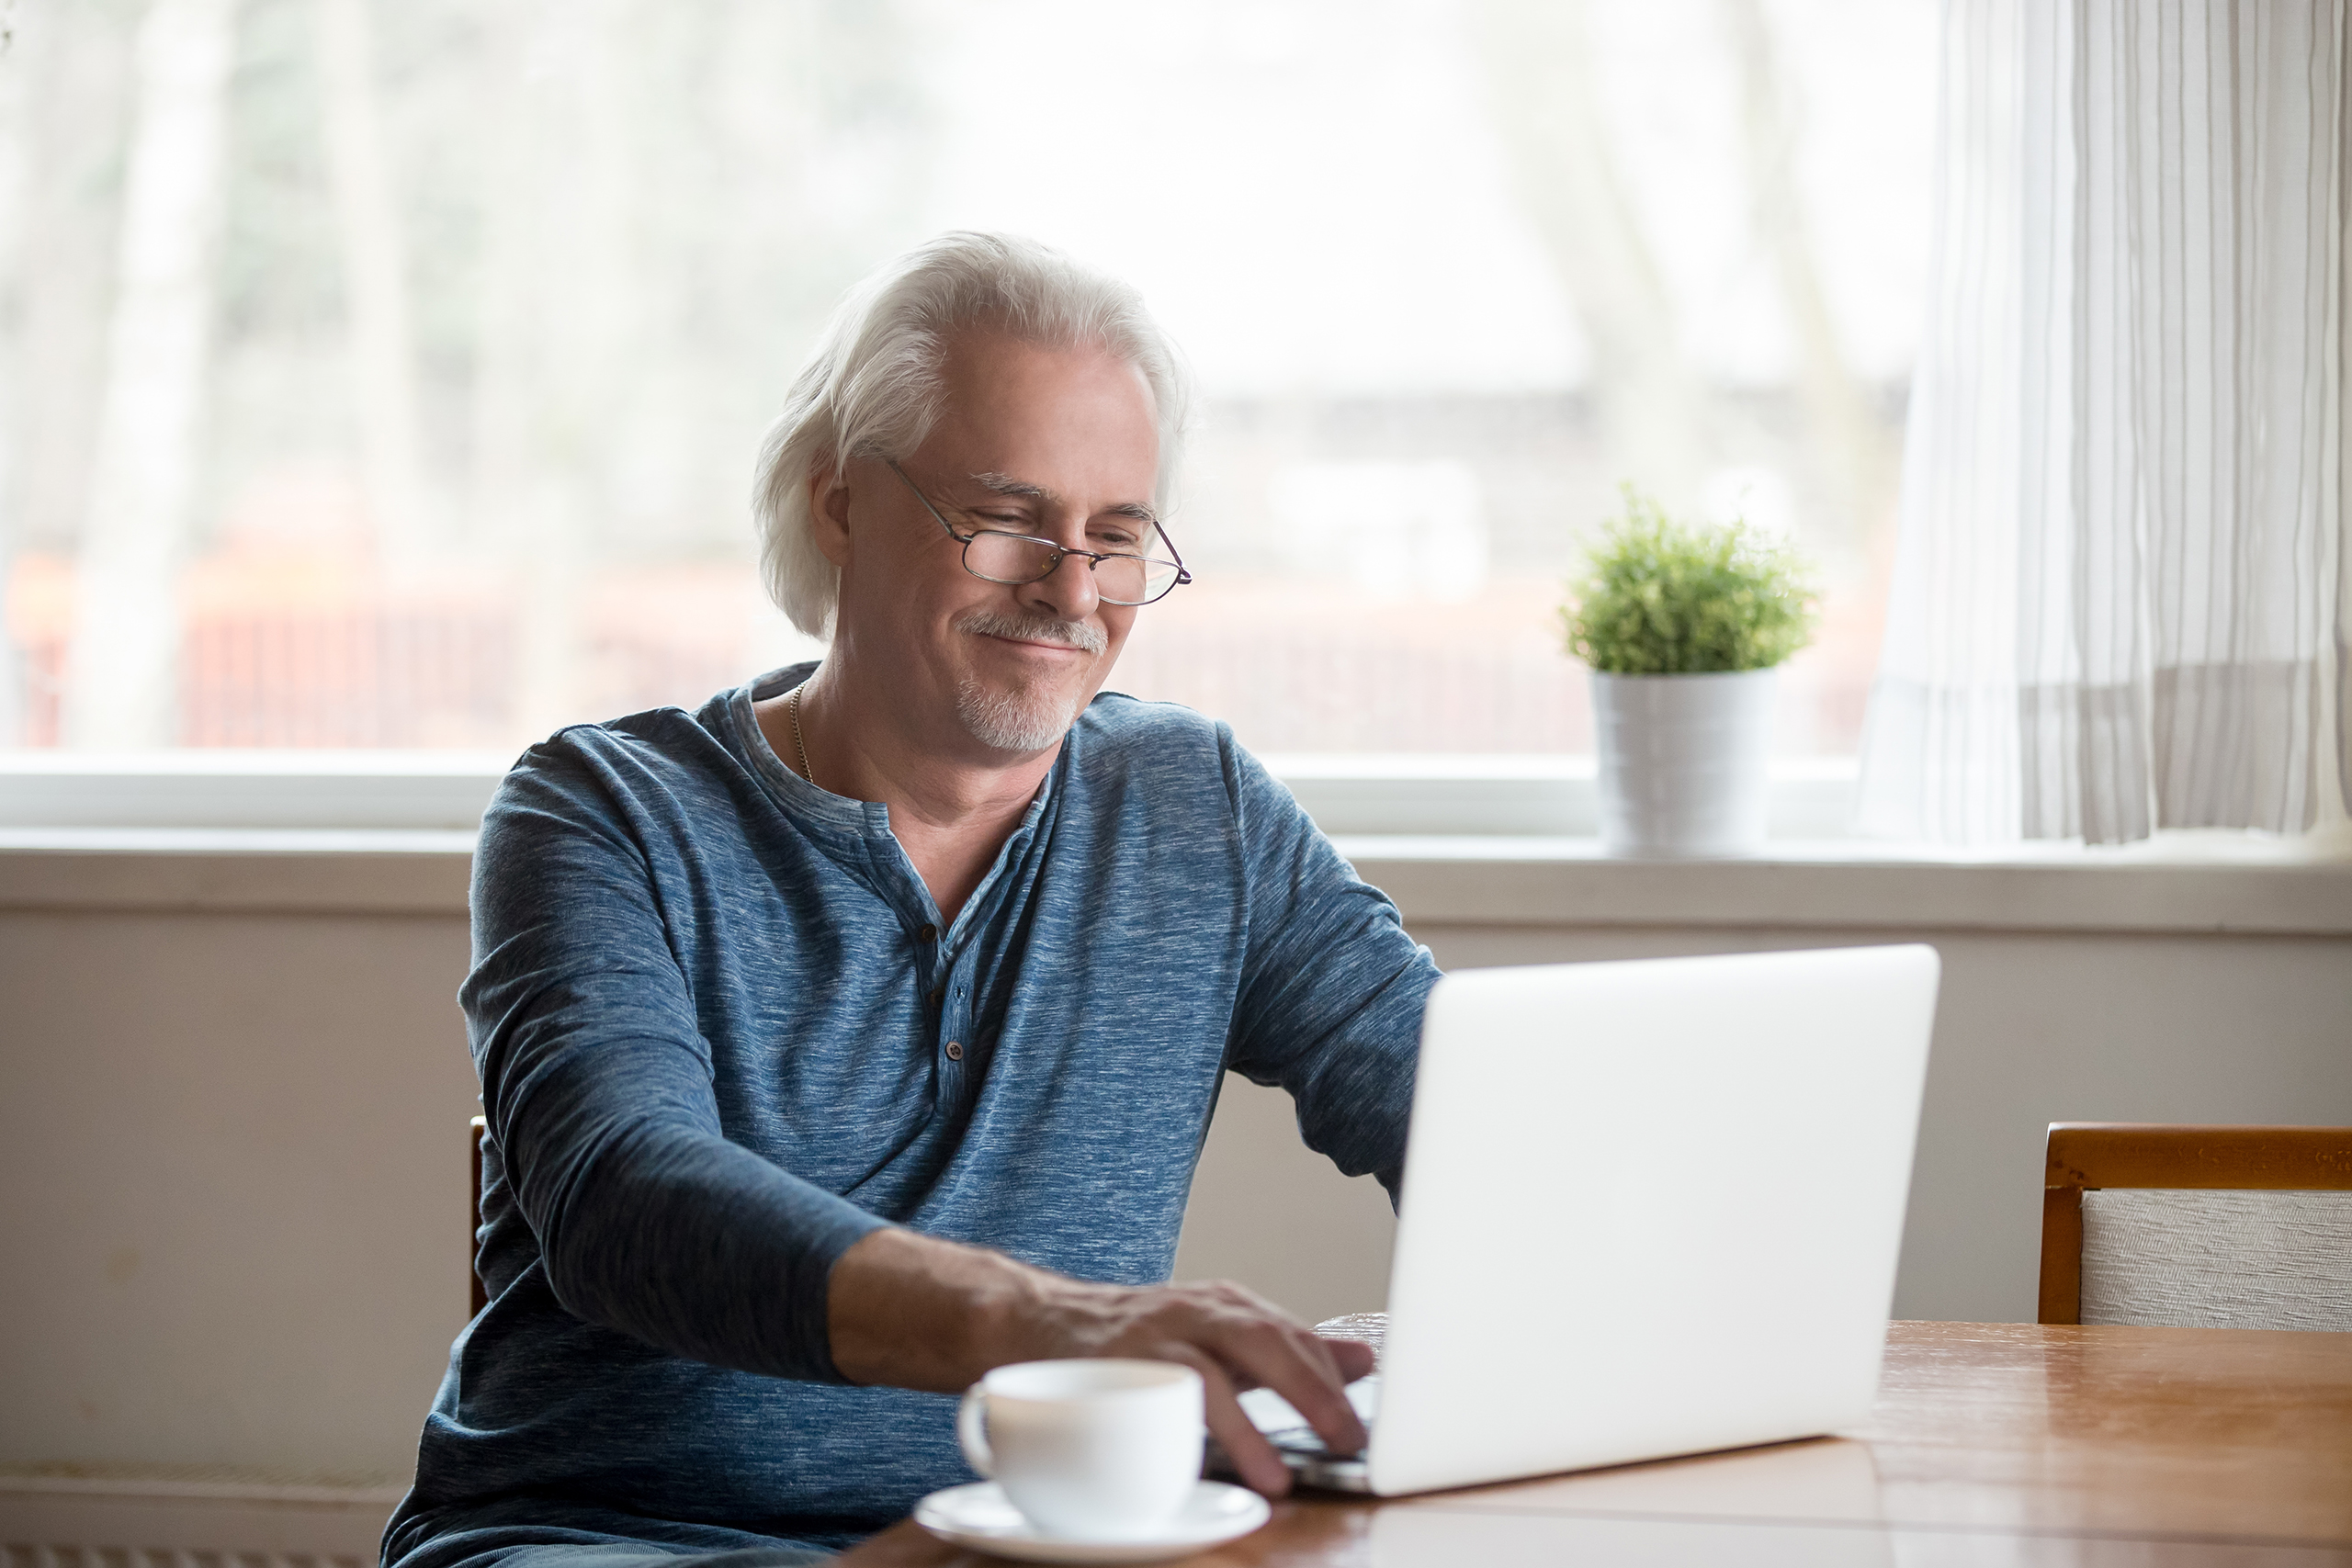 Smiling senior man in glasses working on laptop at home